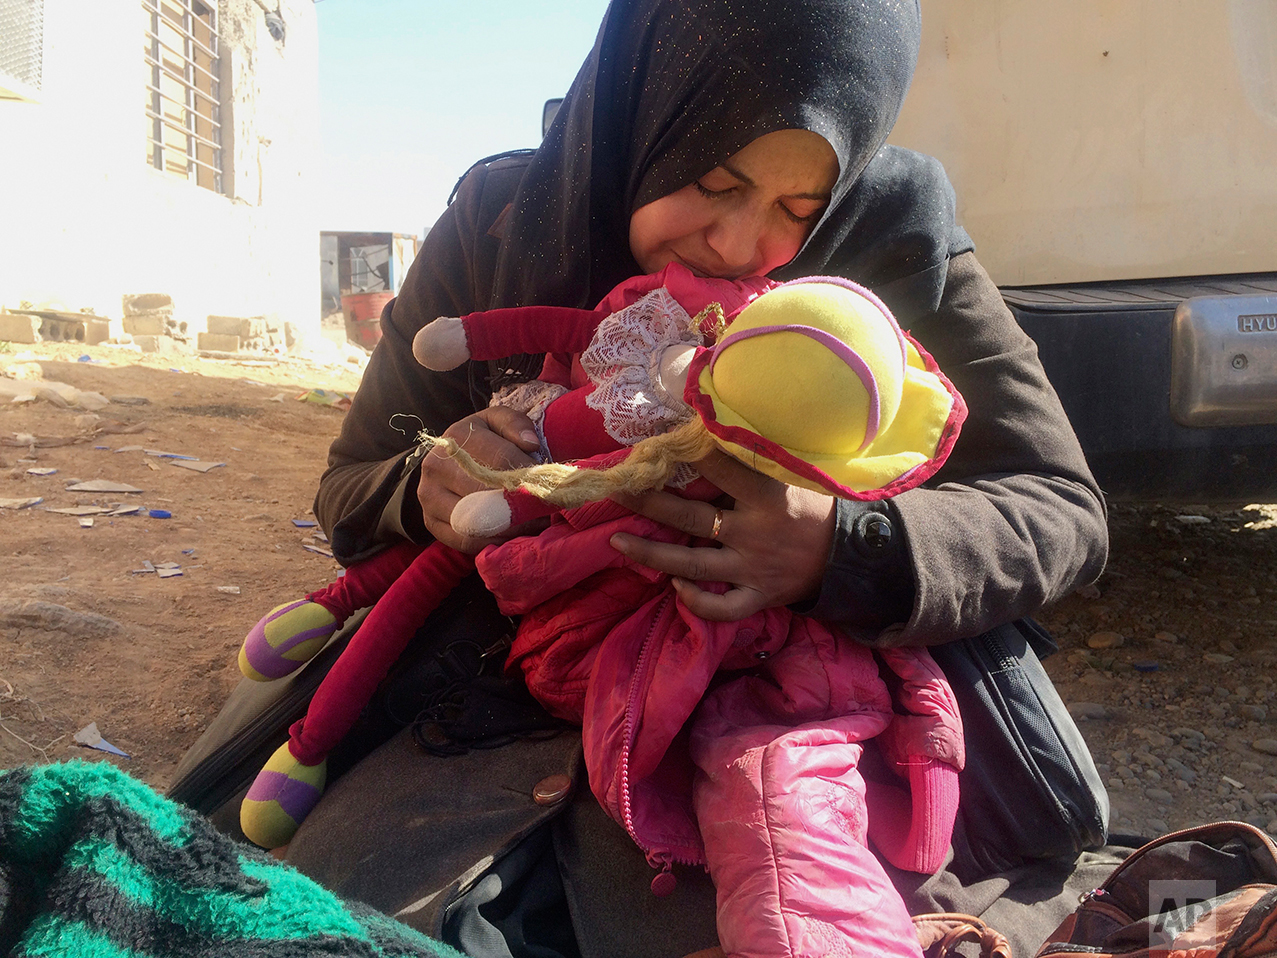 Safana Hamad, a displaced Iraqi mother, holds her daughter  Manar's doll and jacket while mourning over her body, after the four-year-old was killed in an Islamic State mortar attack while trying to flee fighting between Iraqi security forces and Islamic State militants, in western Mosul, Iraq on Sunday, Feb. 26, 2027. (AP Photo/Susannah George)